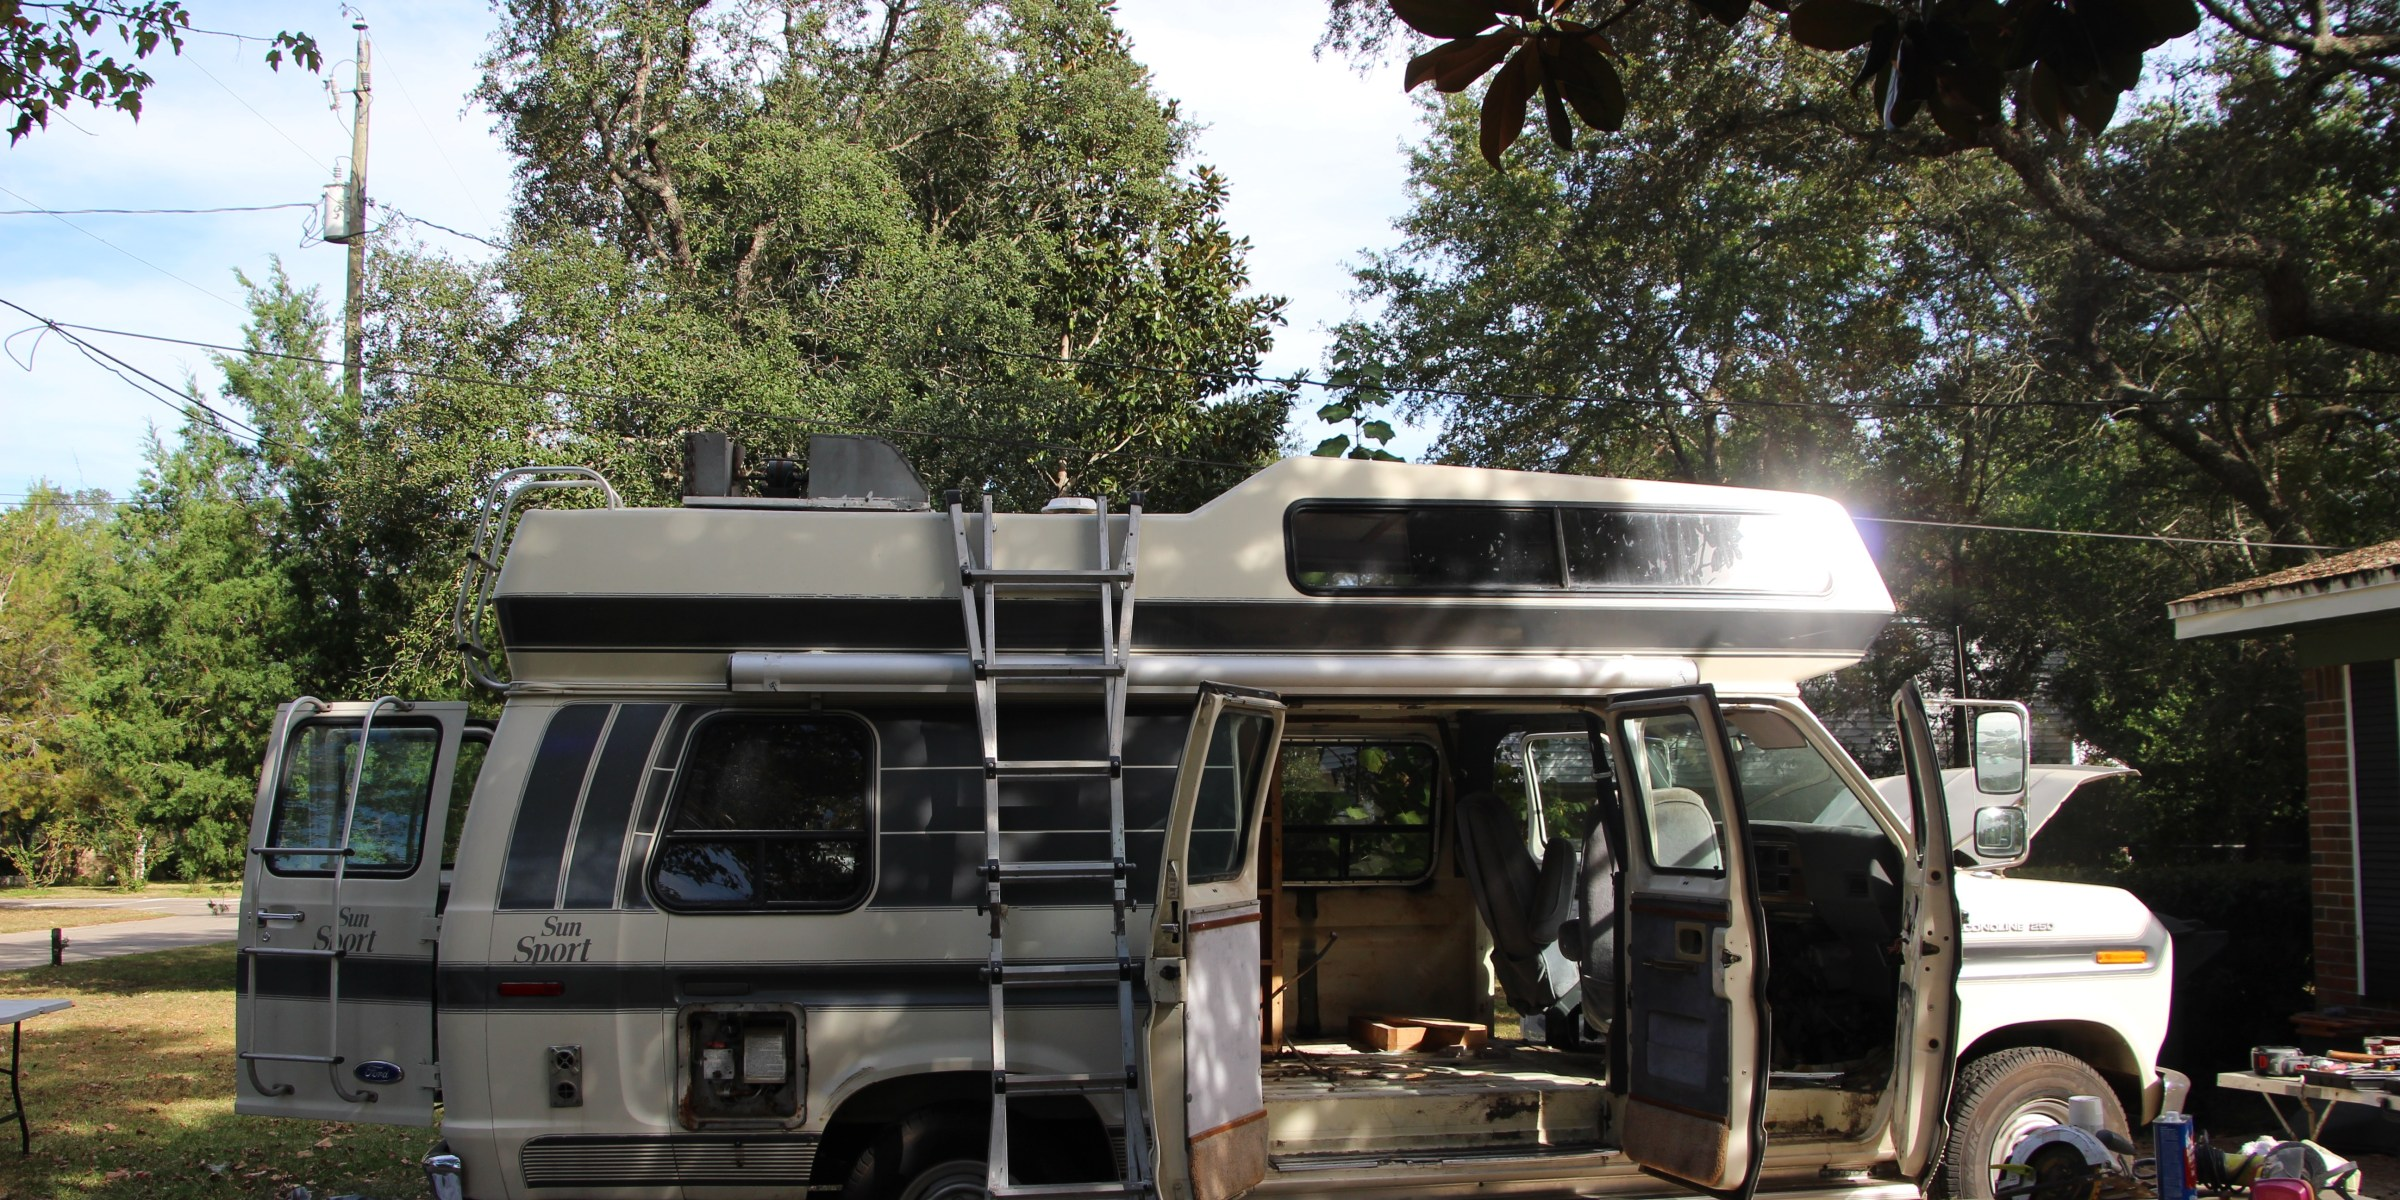 conversion van, van life, van dwelling, live in a van, camping, hiking, build a van, van conversion, travel